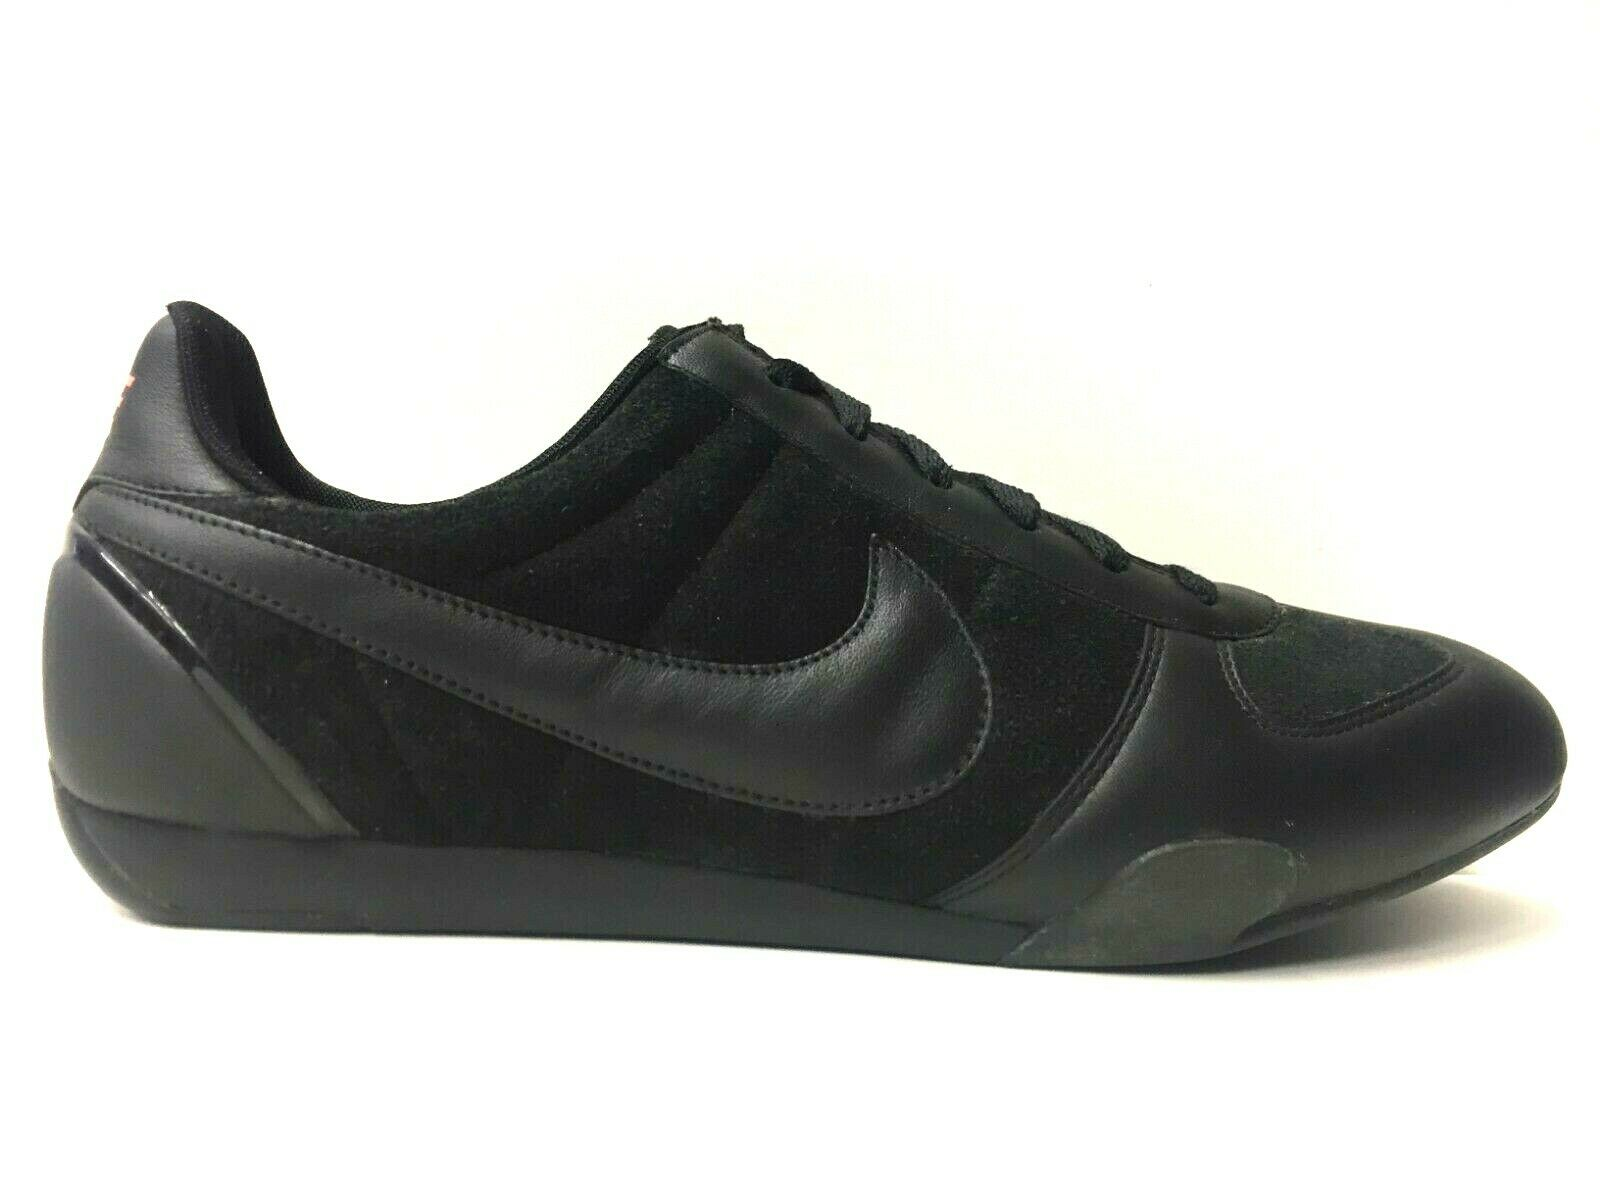 SCARPE SNEAKERS UOMO NIKE ORIGINALE SPRINT BROTHER 3142611 005 PELLE P/E NUOVO